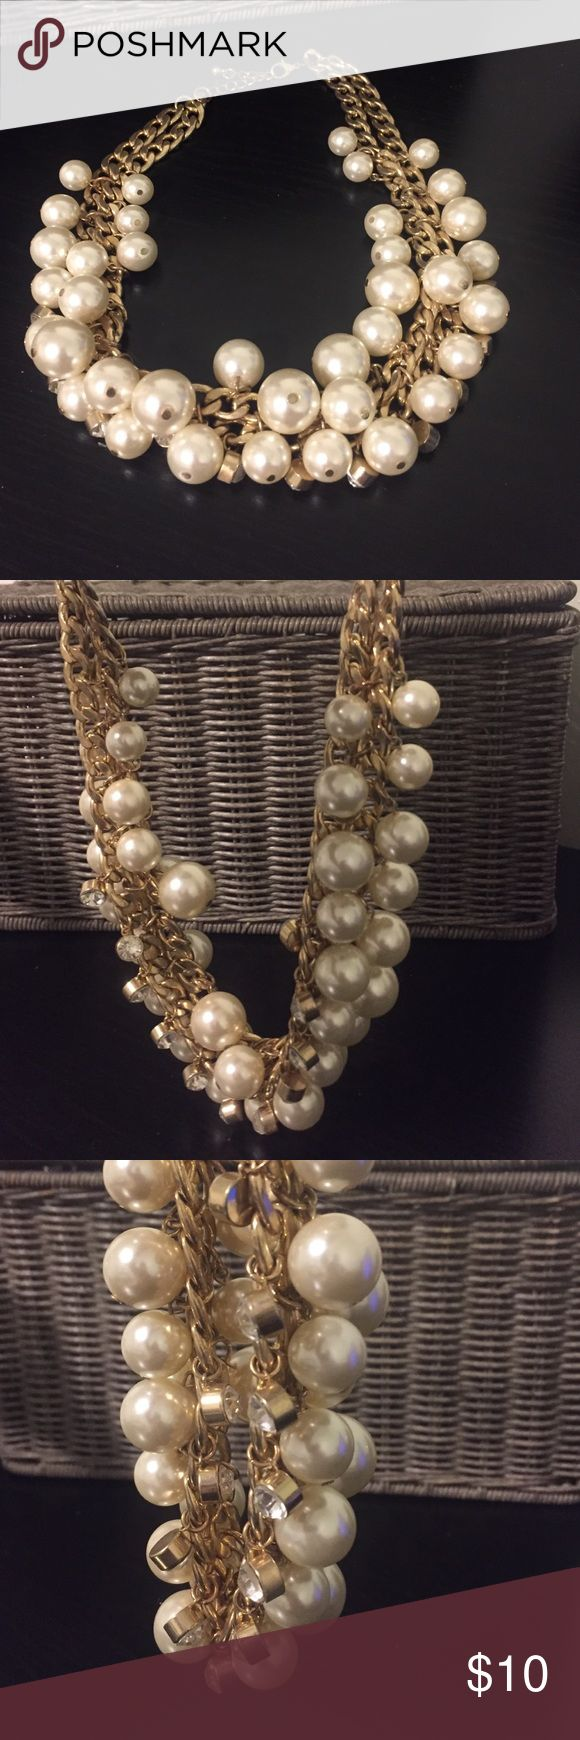 Gold Necklace Gold Necklace, pearls & Diamonds, chunky chain, has band to make longer/shorter Jewelry Necklaces